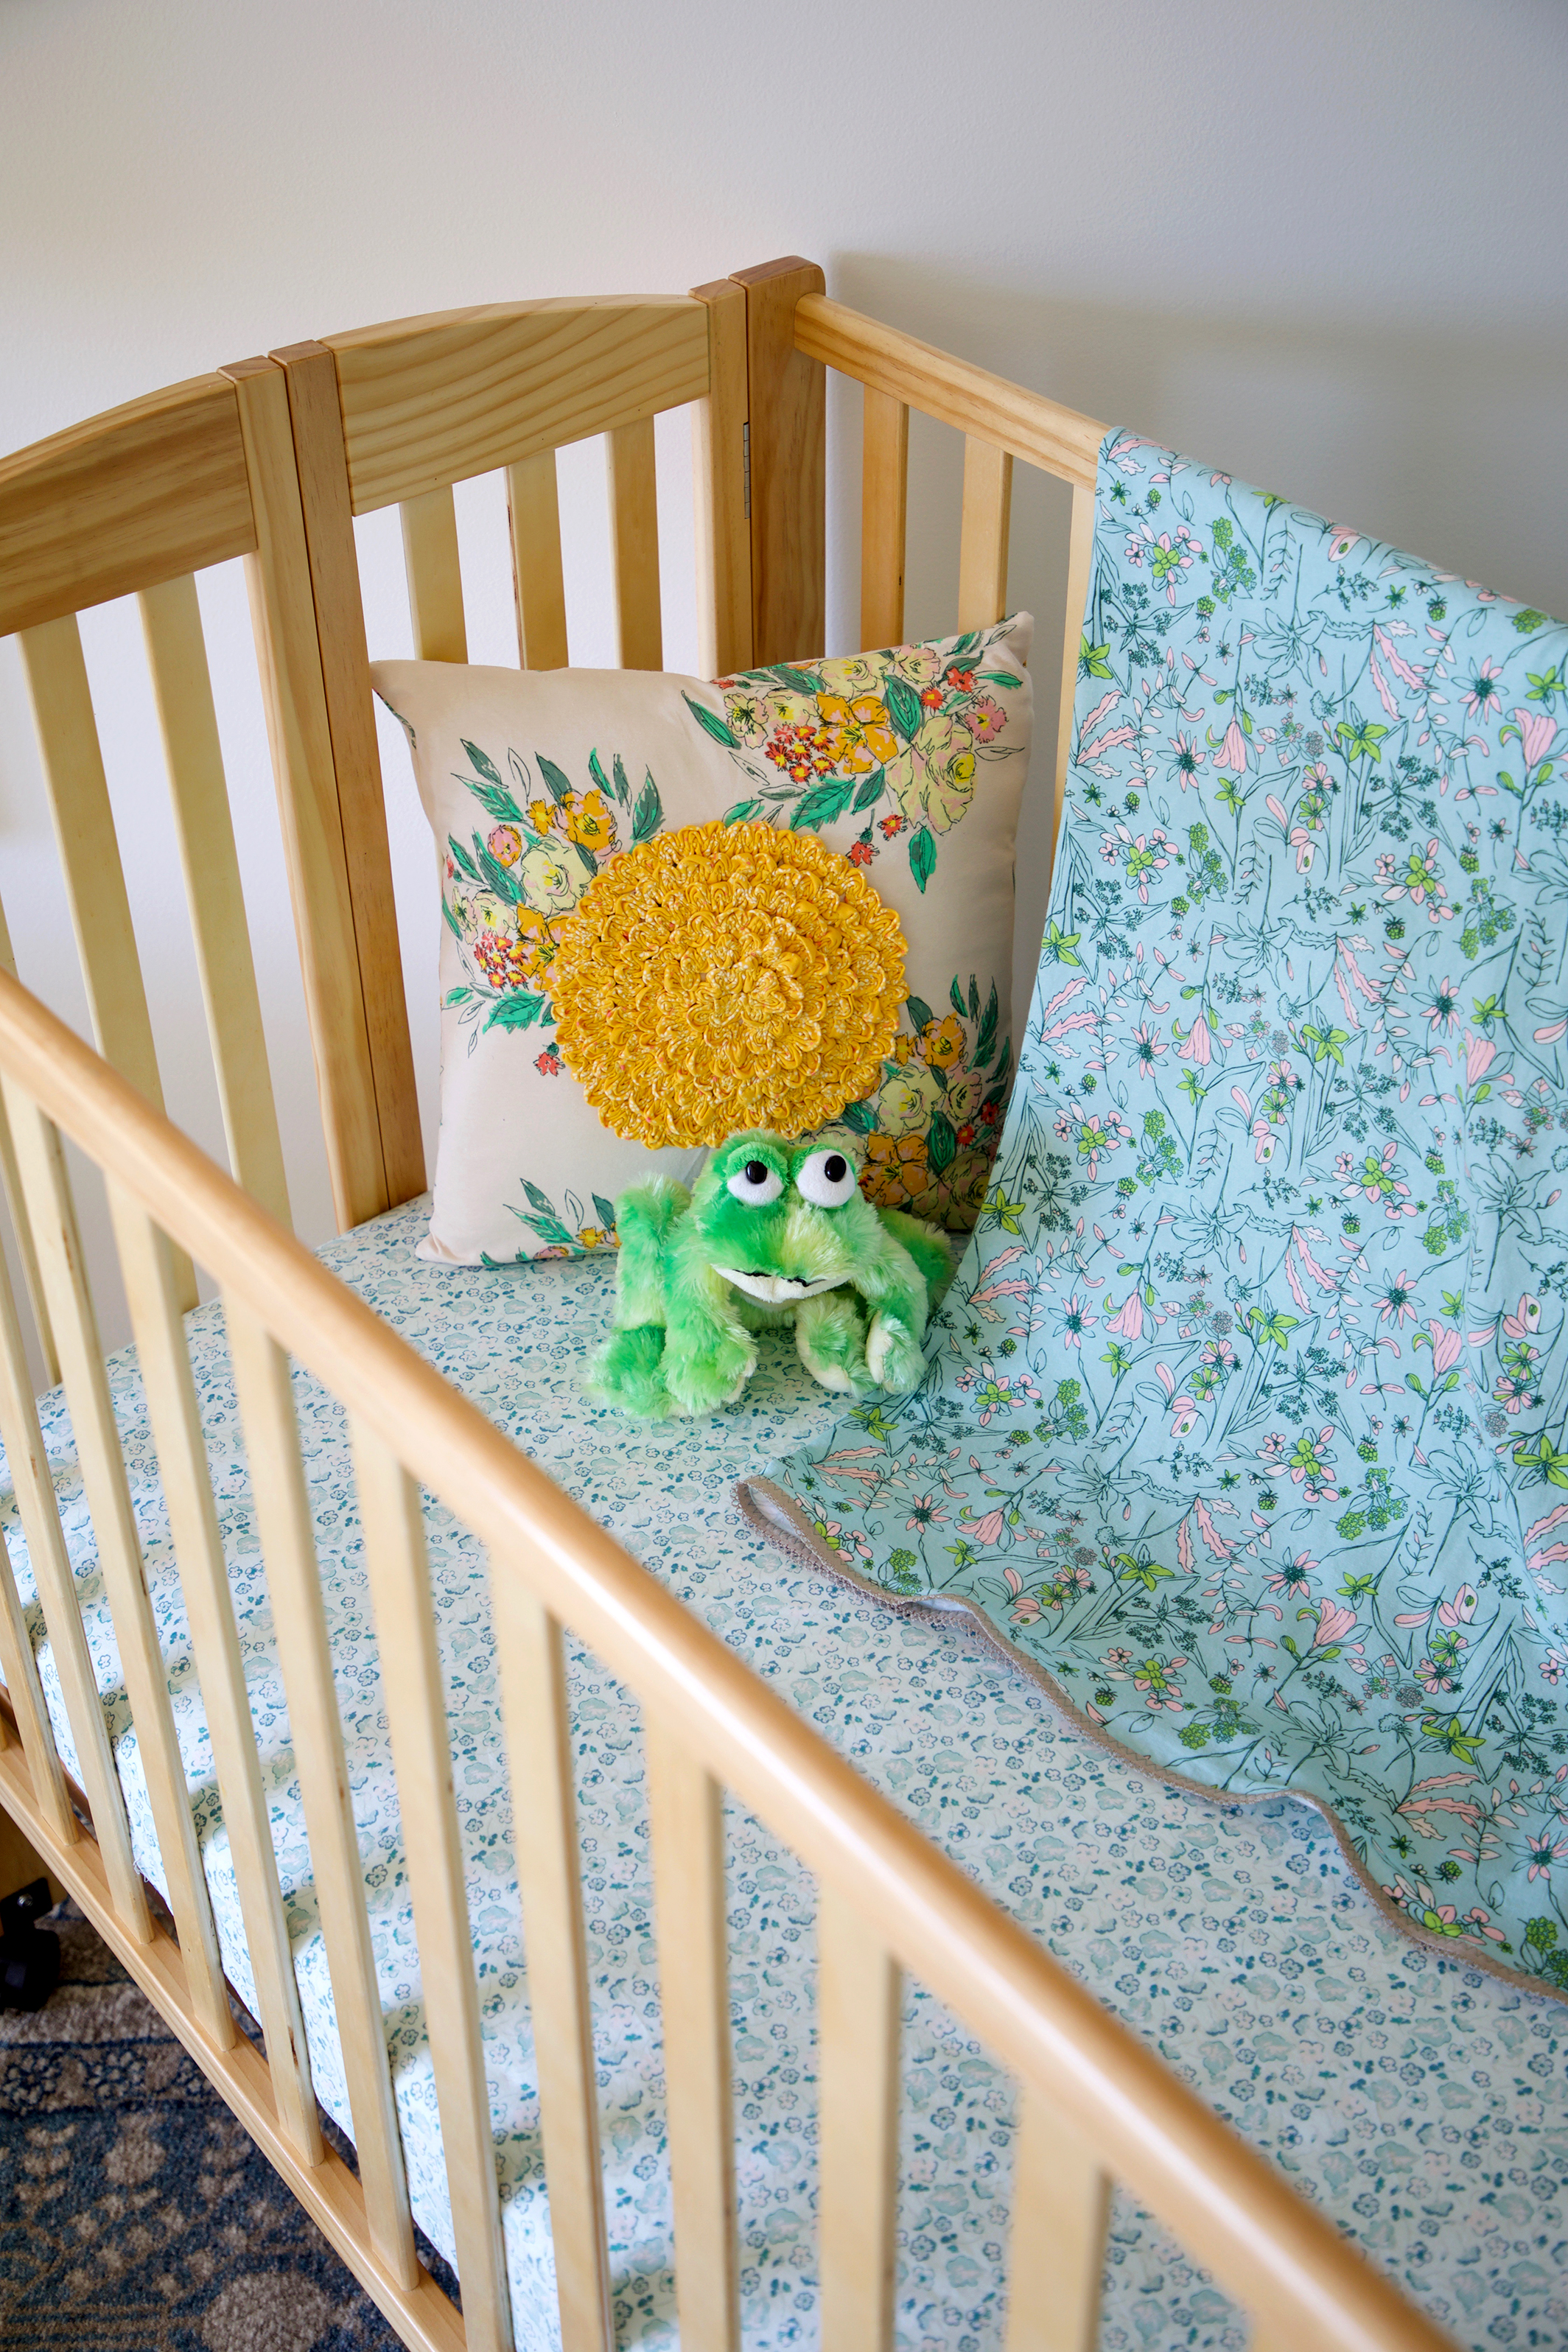 Signatrue Fabrics Crib Sheet Set.jpg